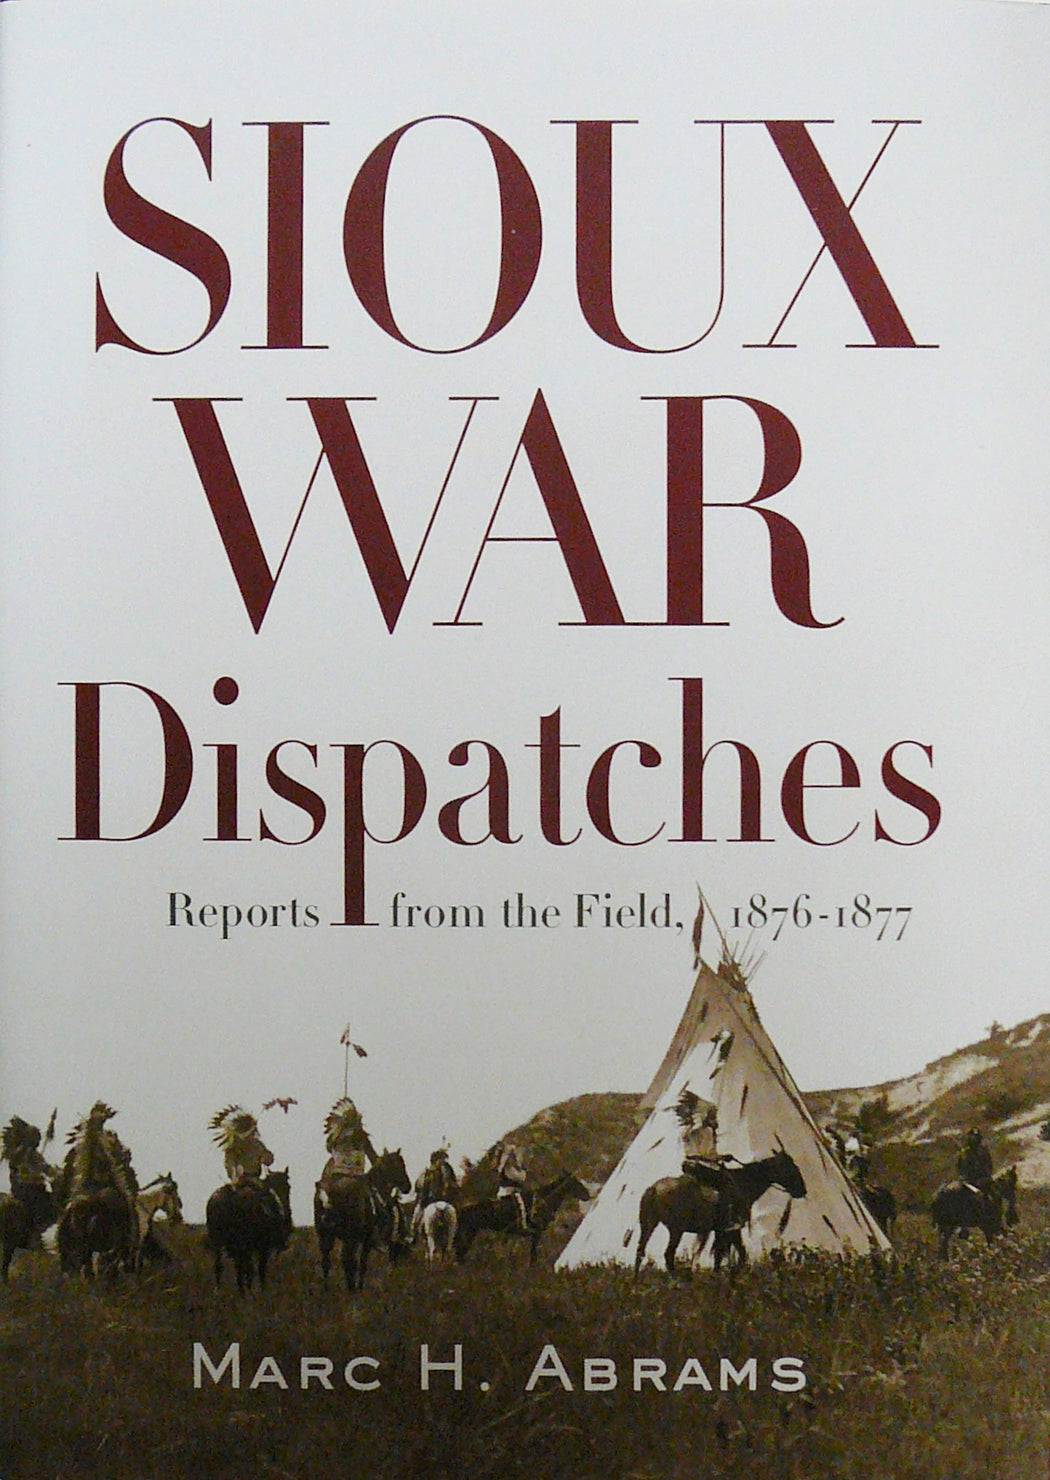 Sioux War Dispatches Reports from the Field, 1876-1877